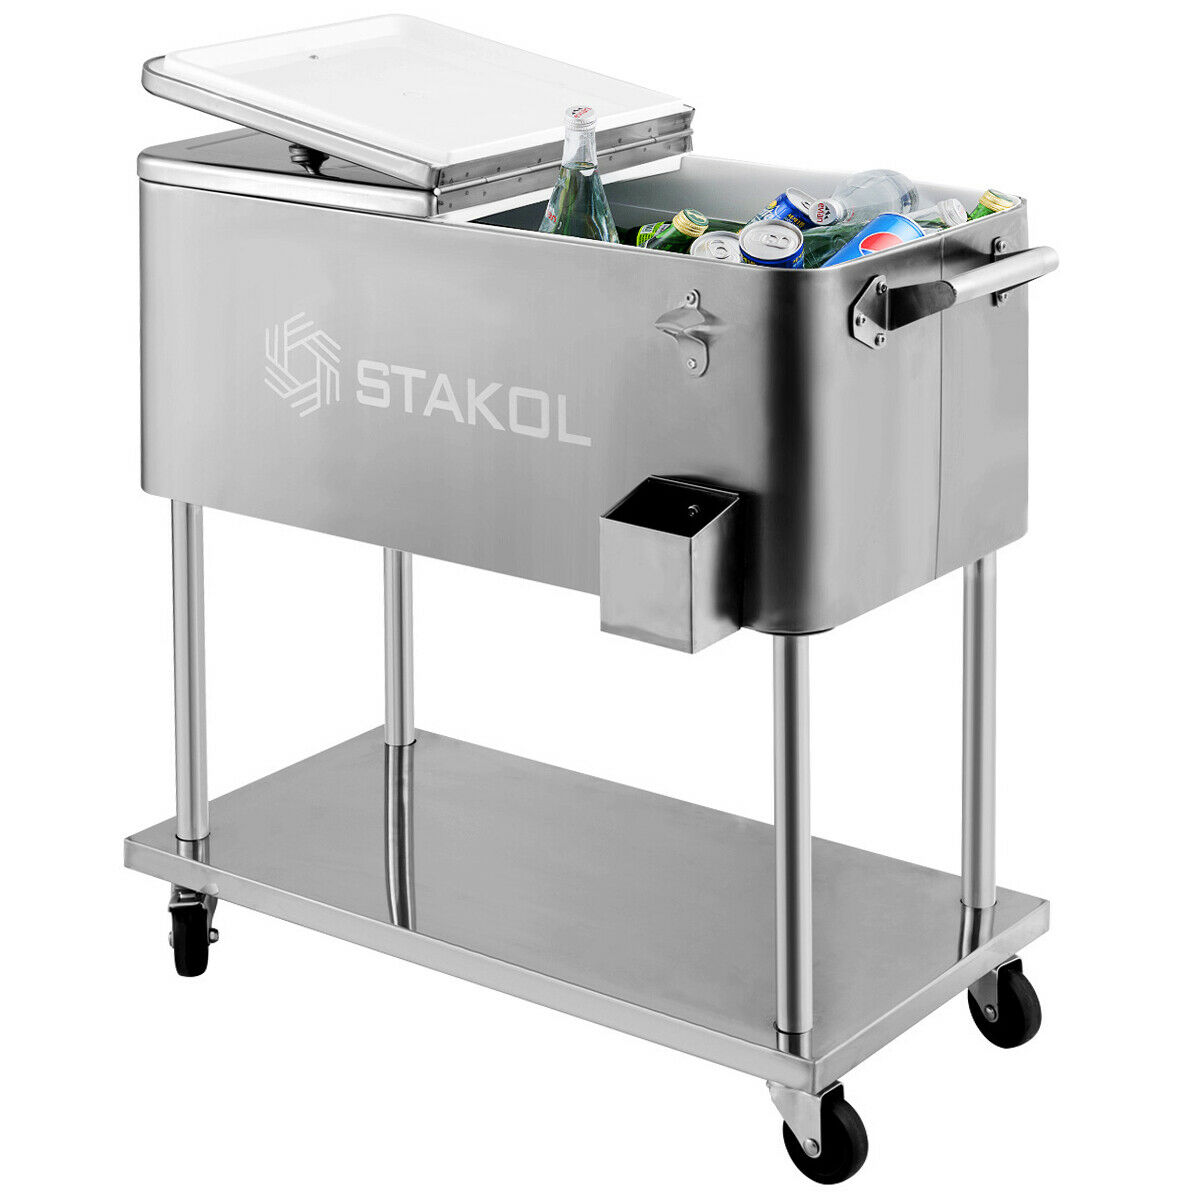 Costway Outdoor 80QT Portable Rolling Party Cooler Drink Ice Chest Patio Iron Spray Cart